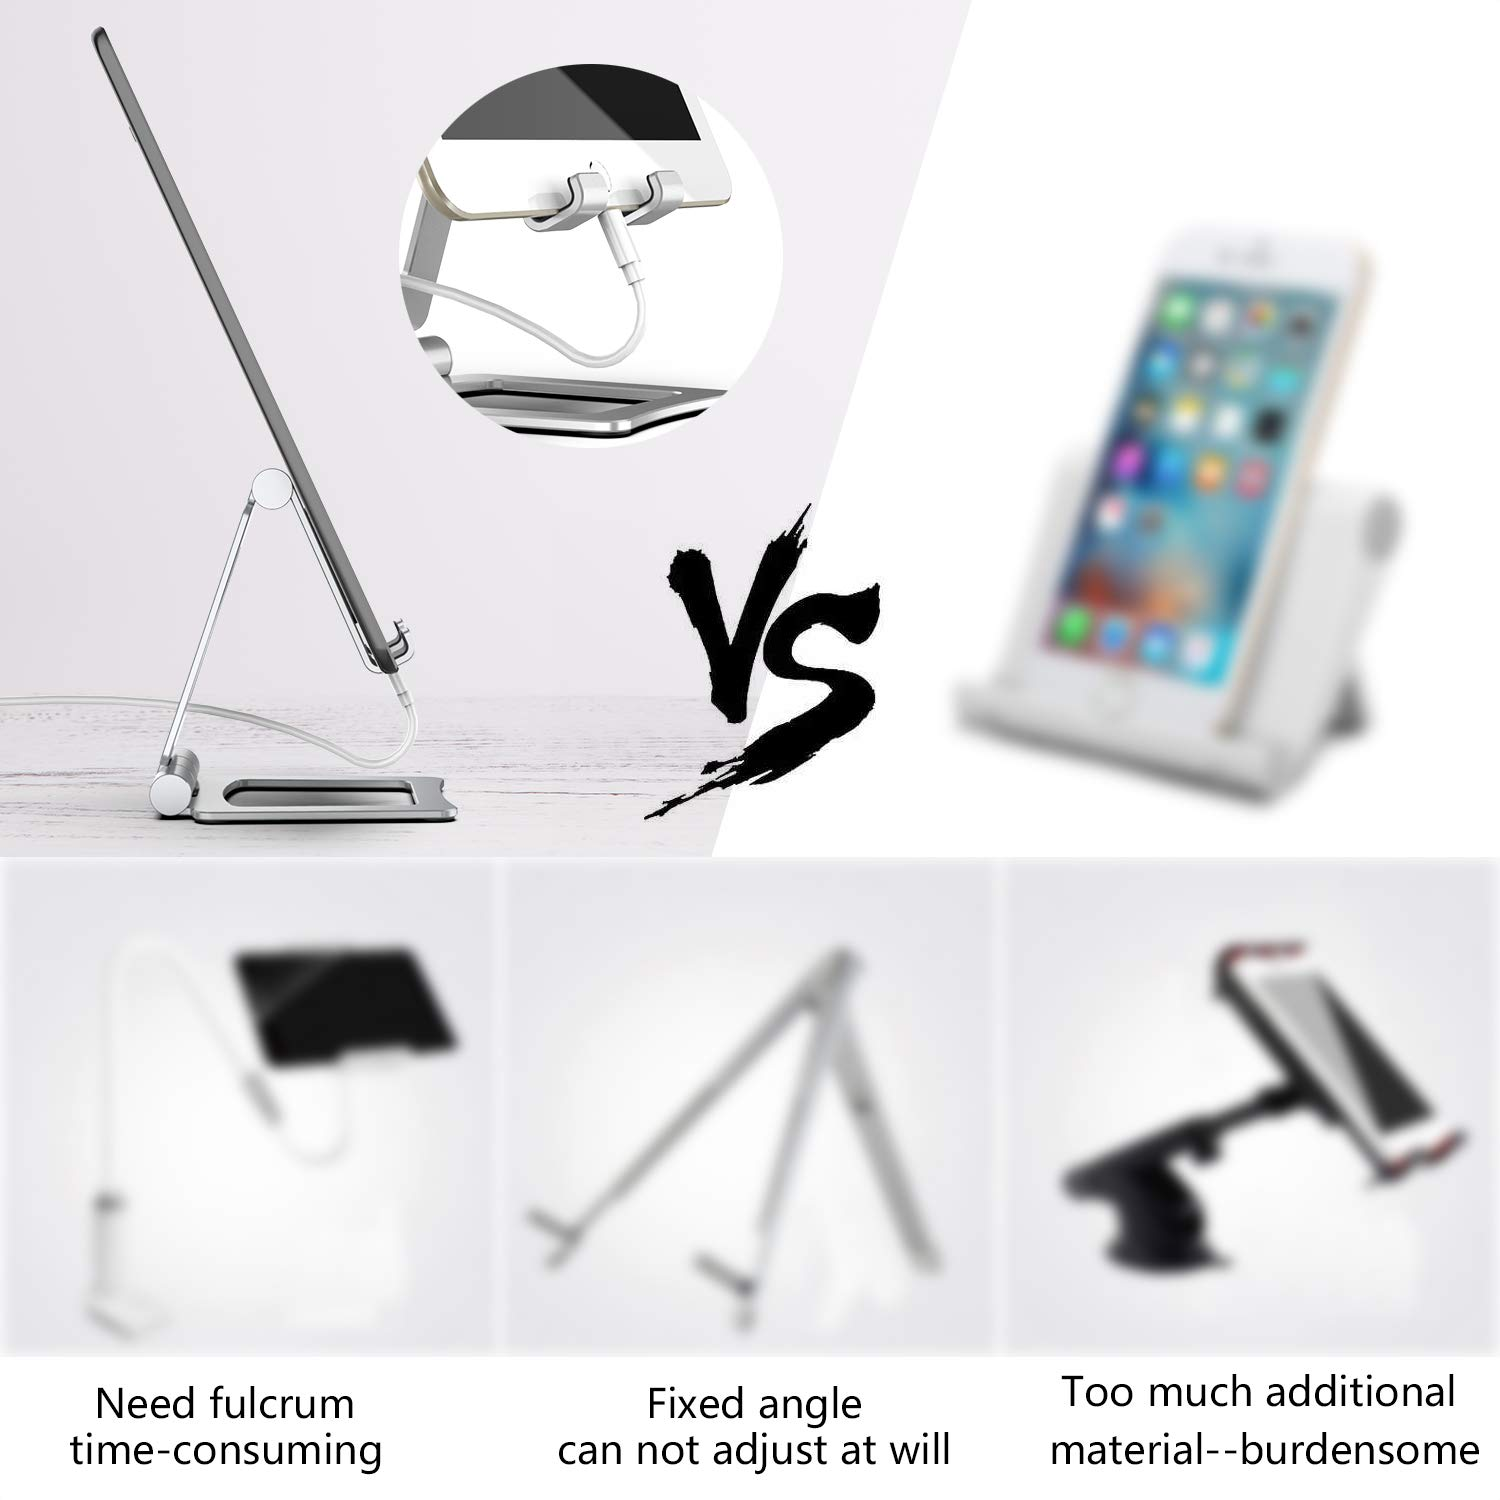 Lululeague Universal Tablet Stands iPad holder Stand for iPhone, Phone, iPad Pro, iPad mini, Nintendo Switch, kindle (Silver)